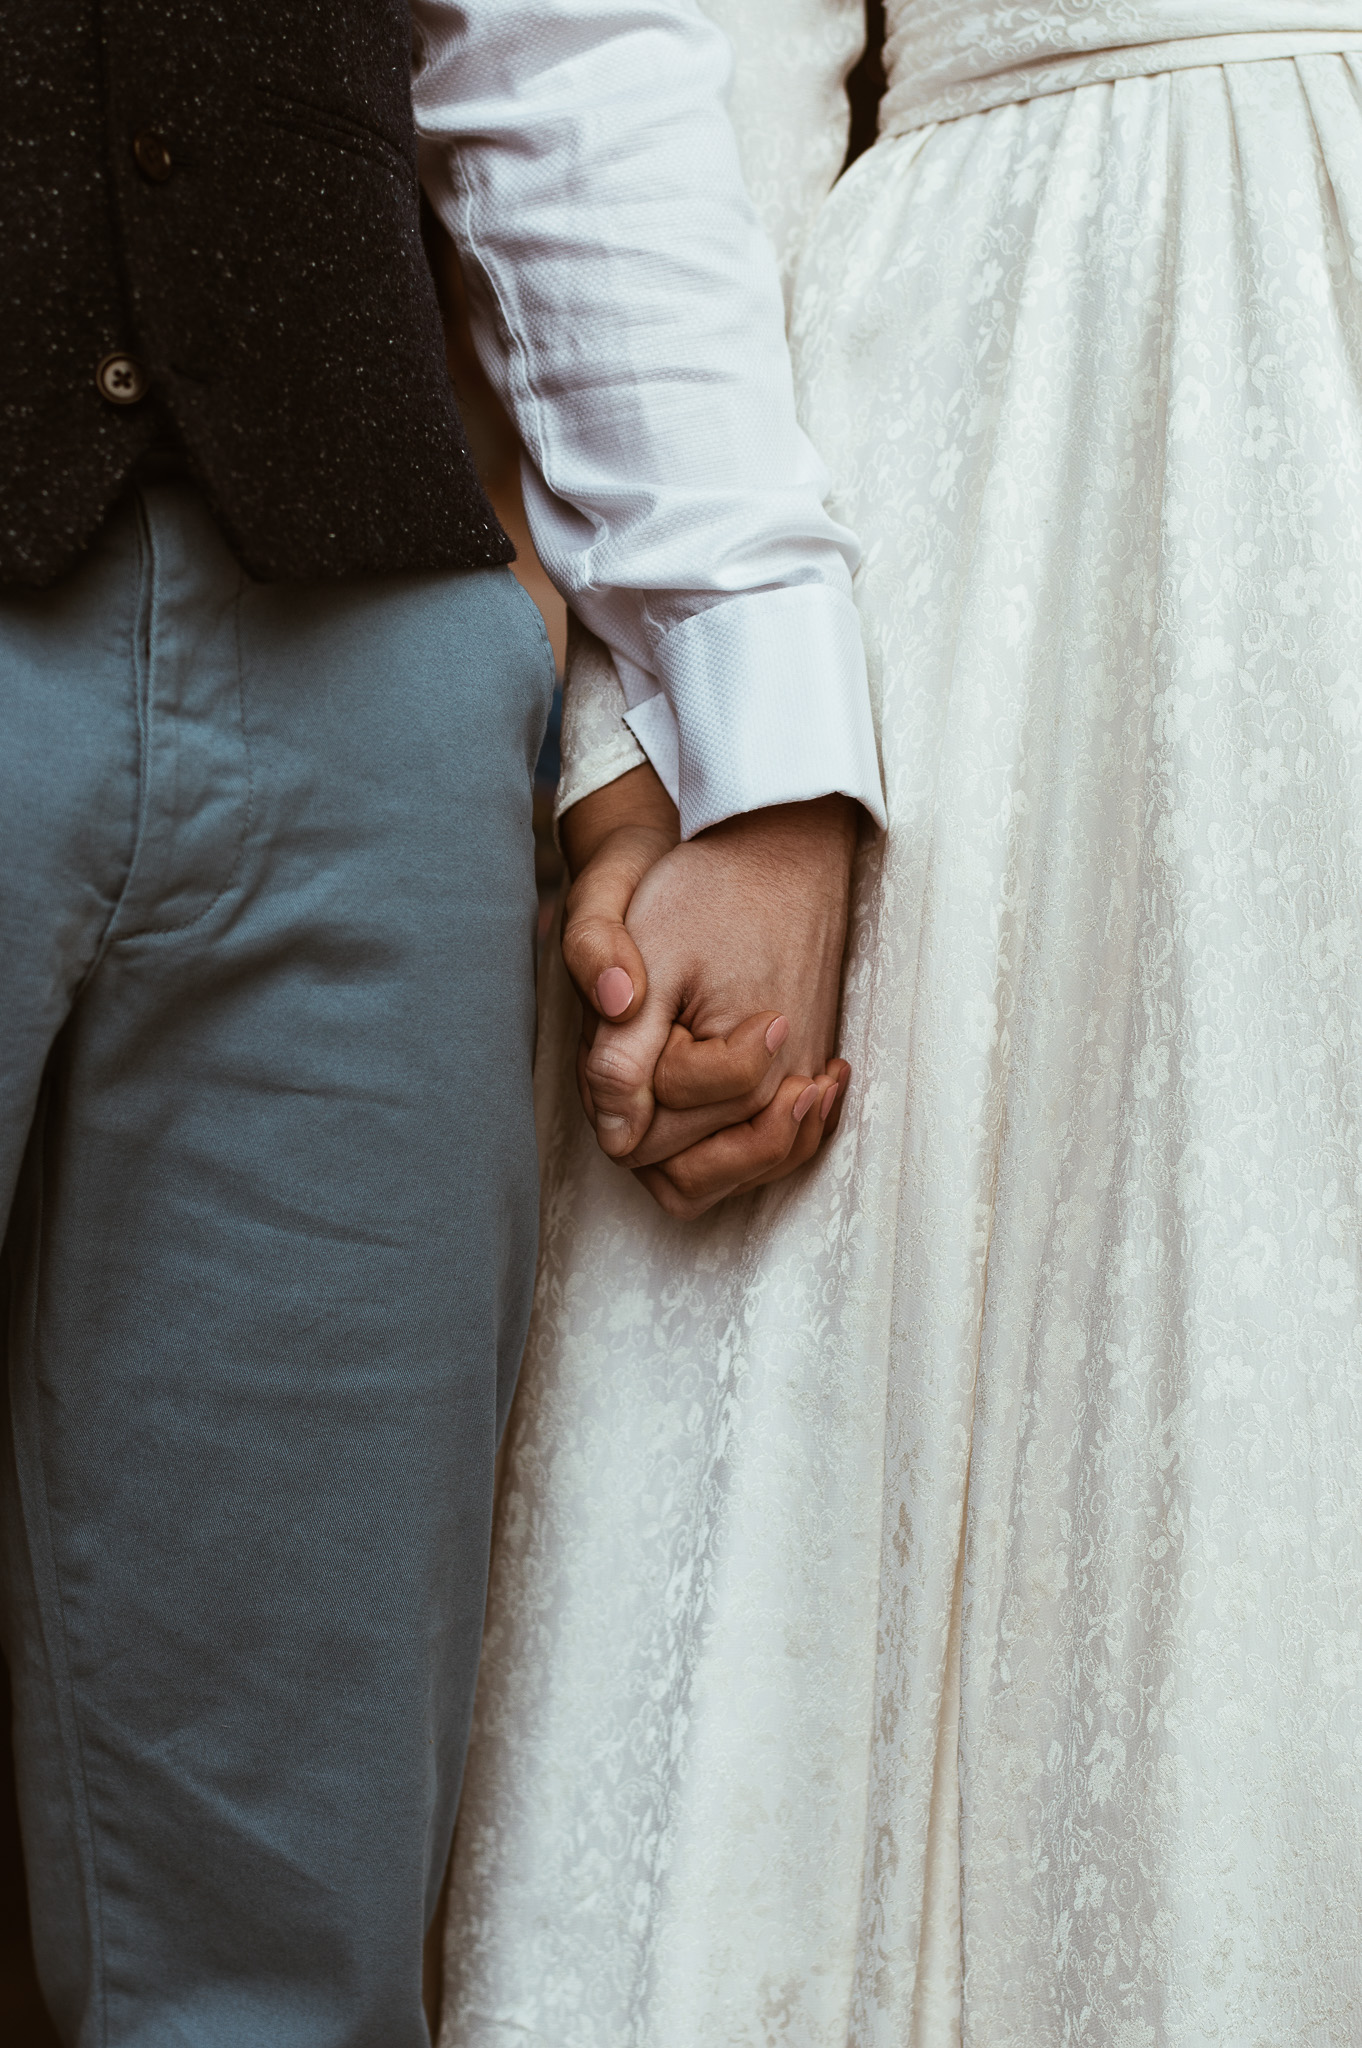 Holding Hands. Wedding Photography. Swansea, South Wales.